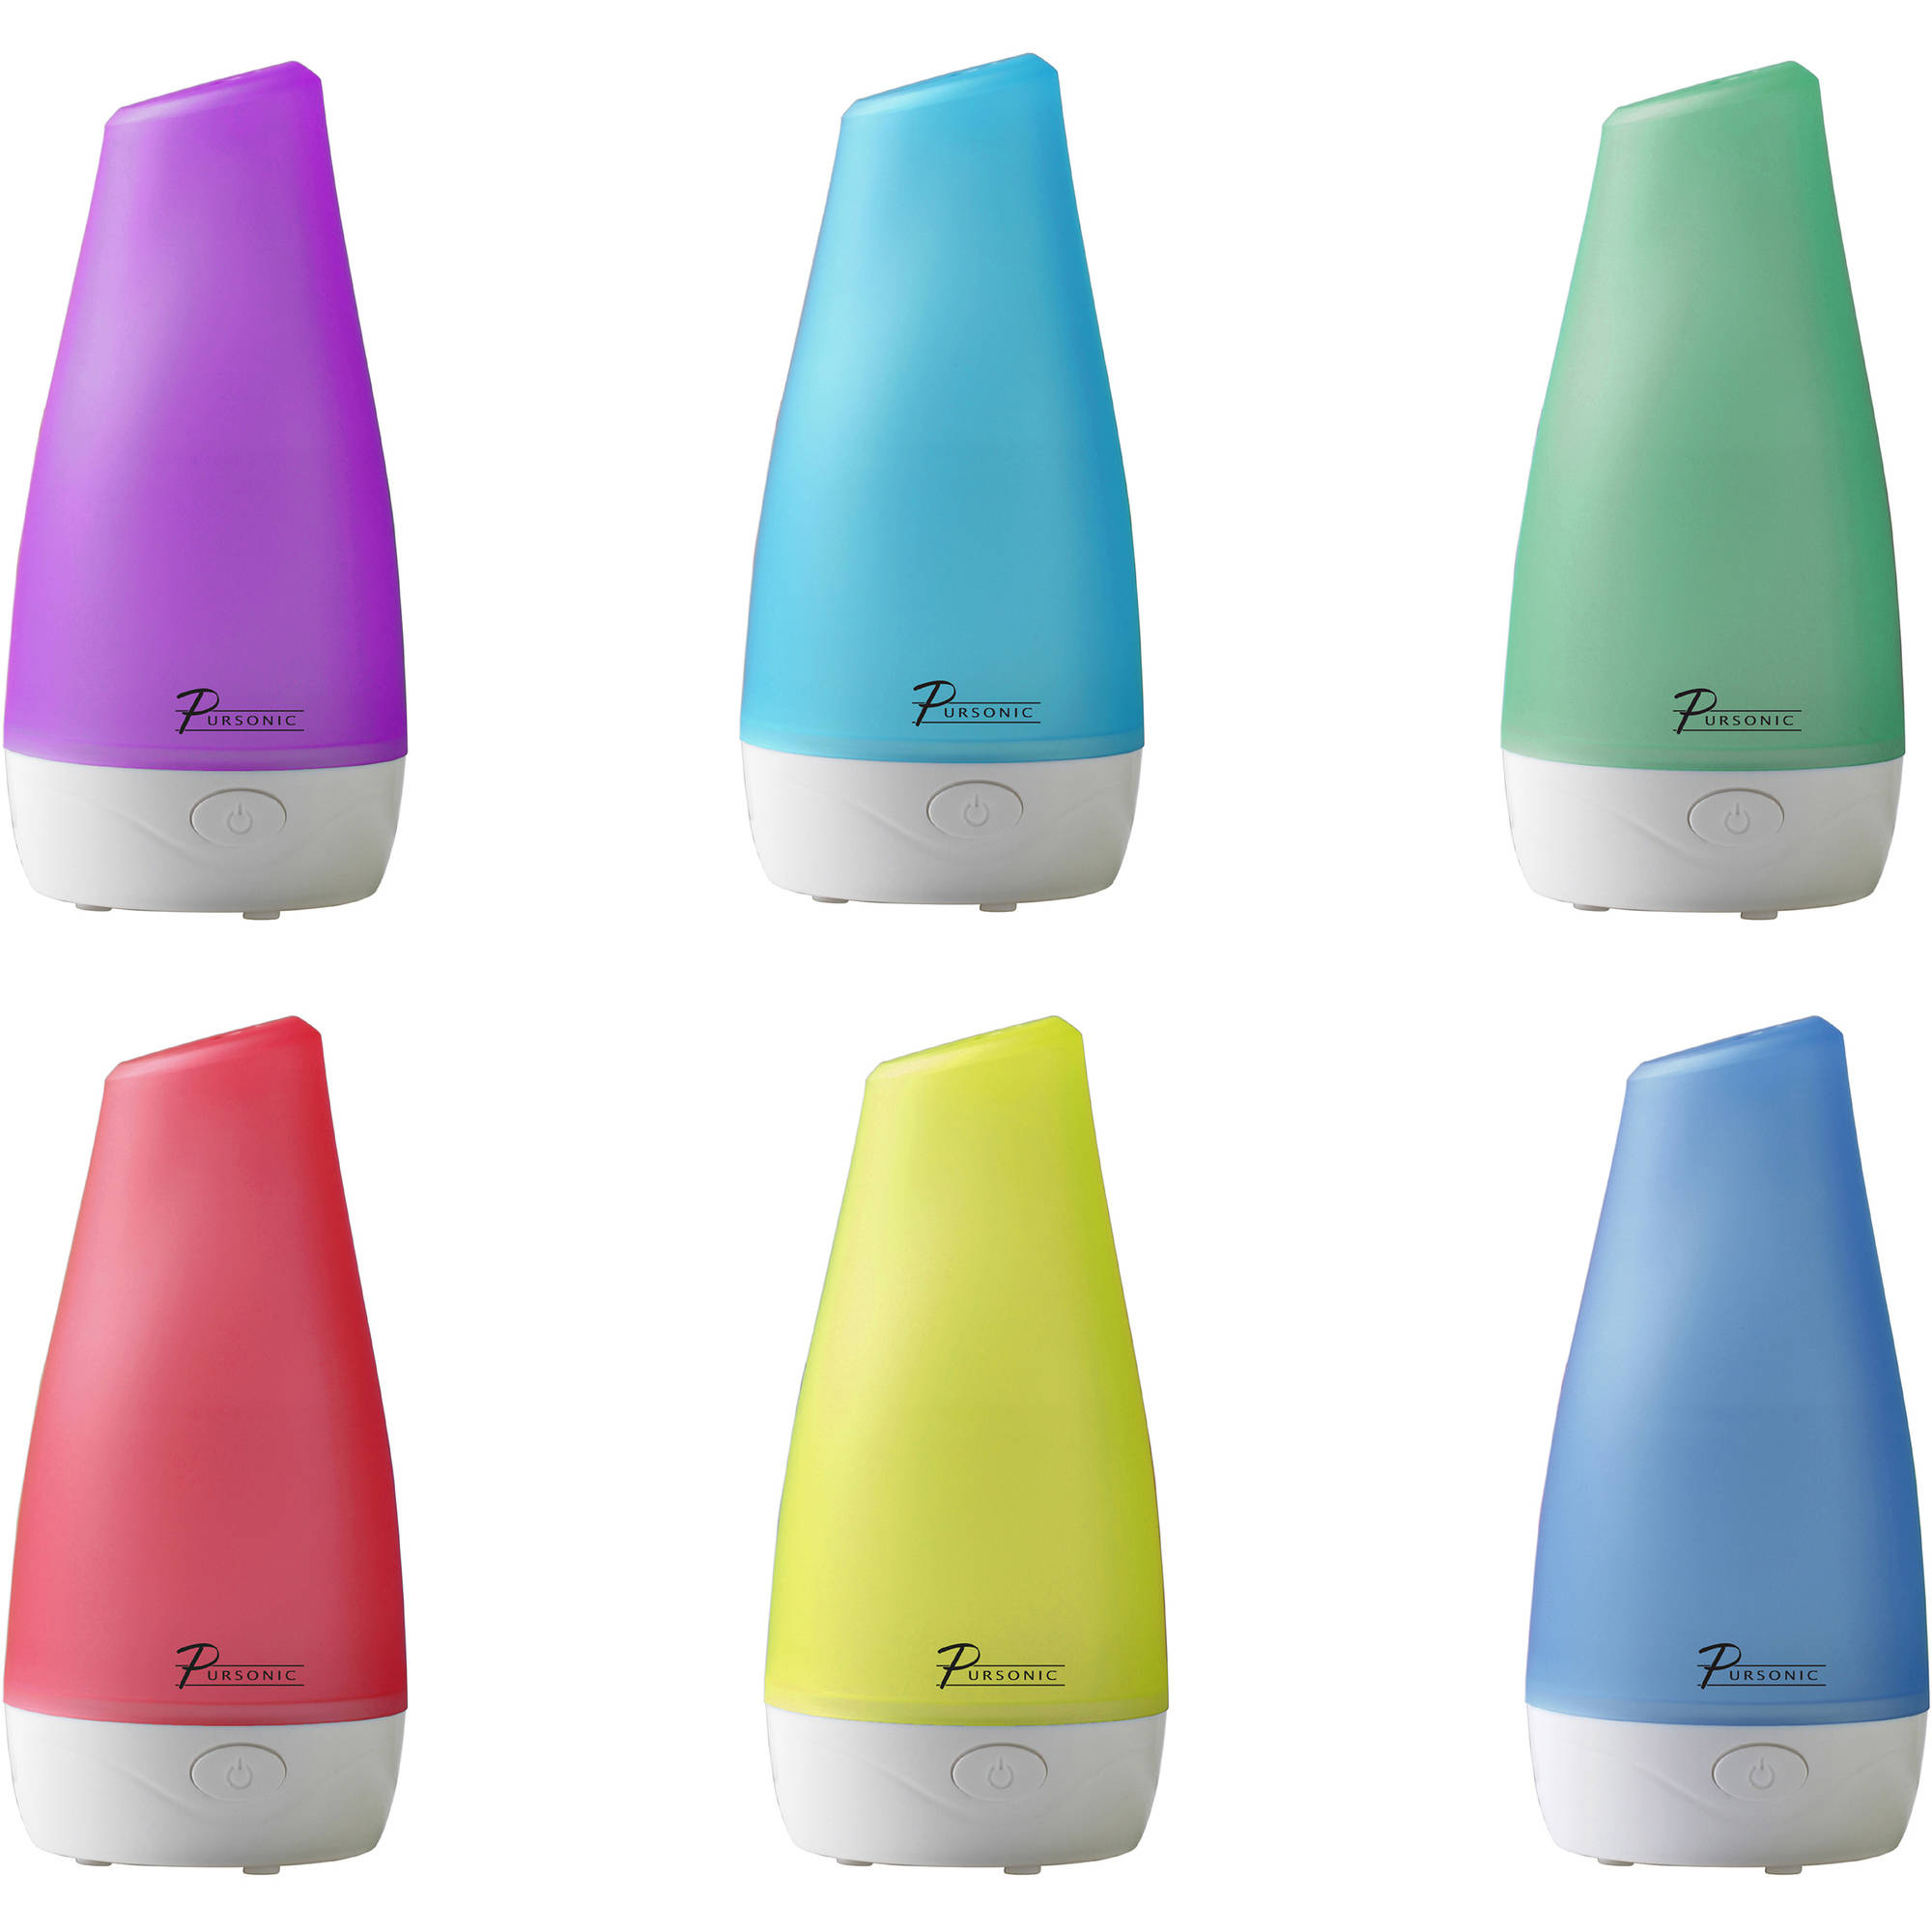 Pursonic Ultrasonic Aroma Diffuser with 2 Included Oils